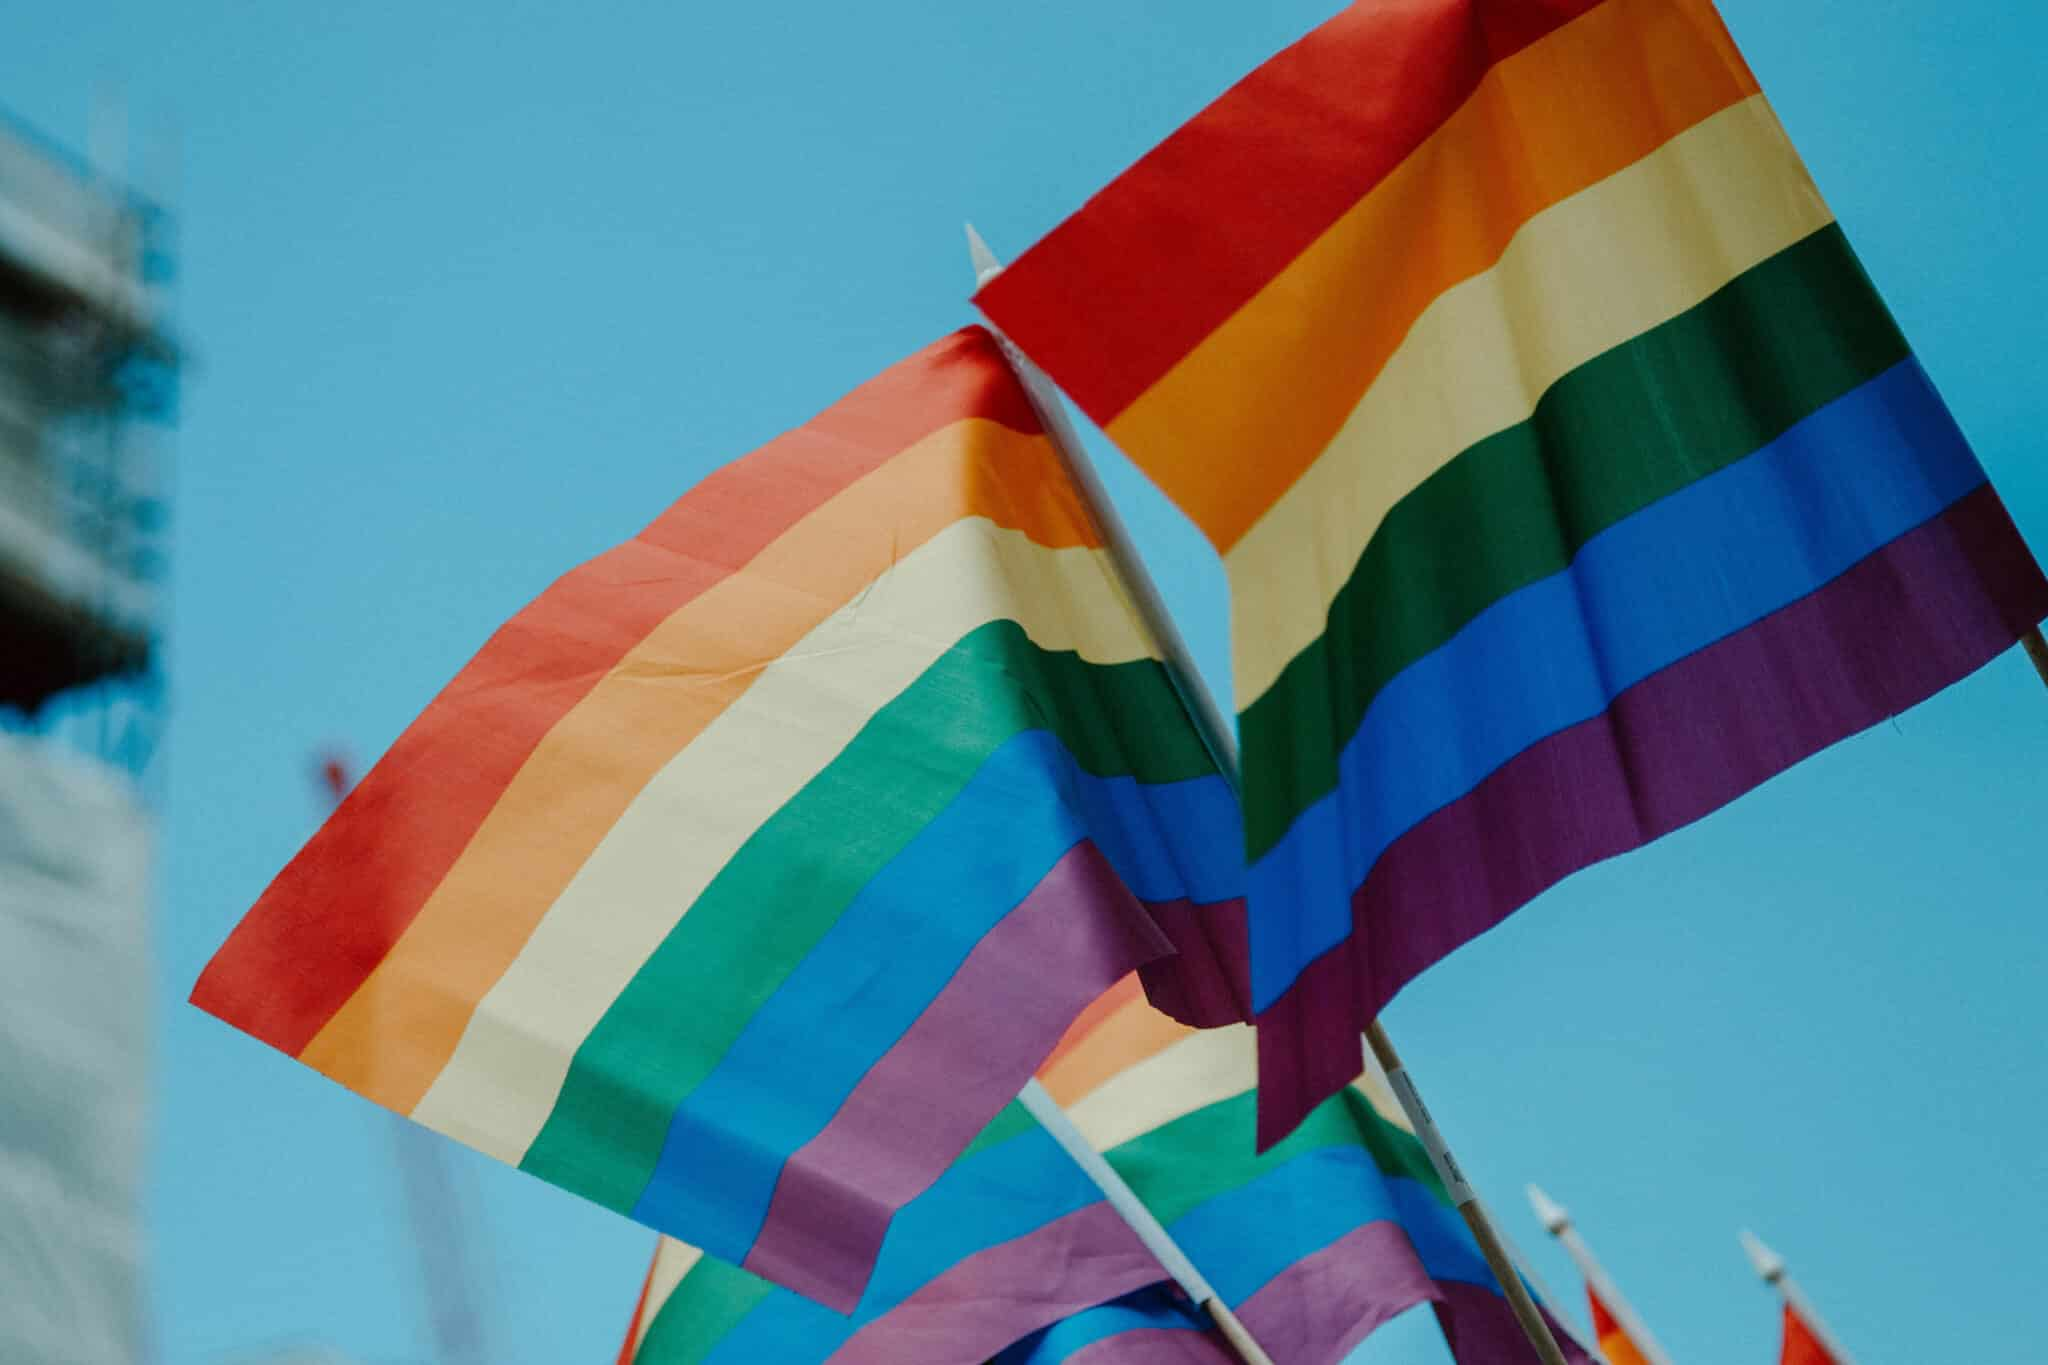 Three rainbow flags